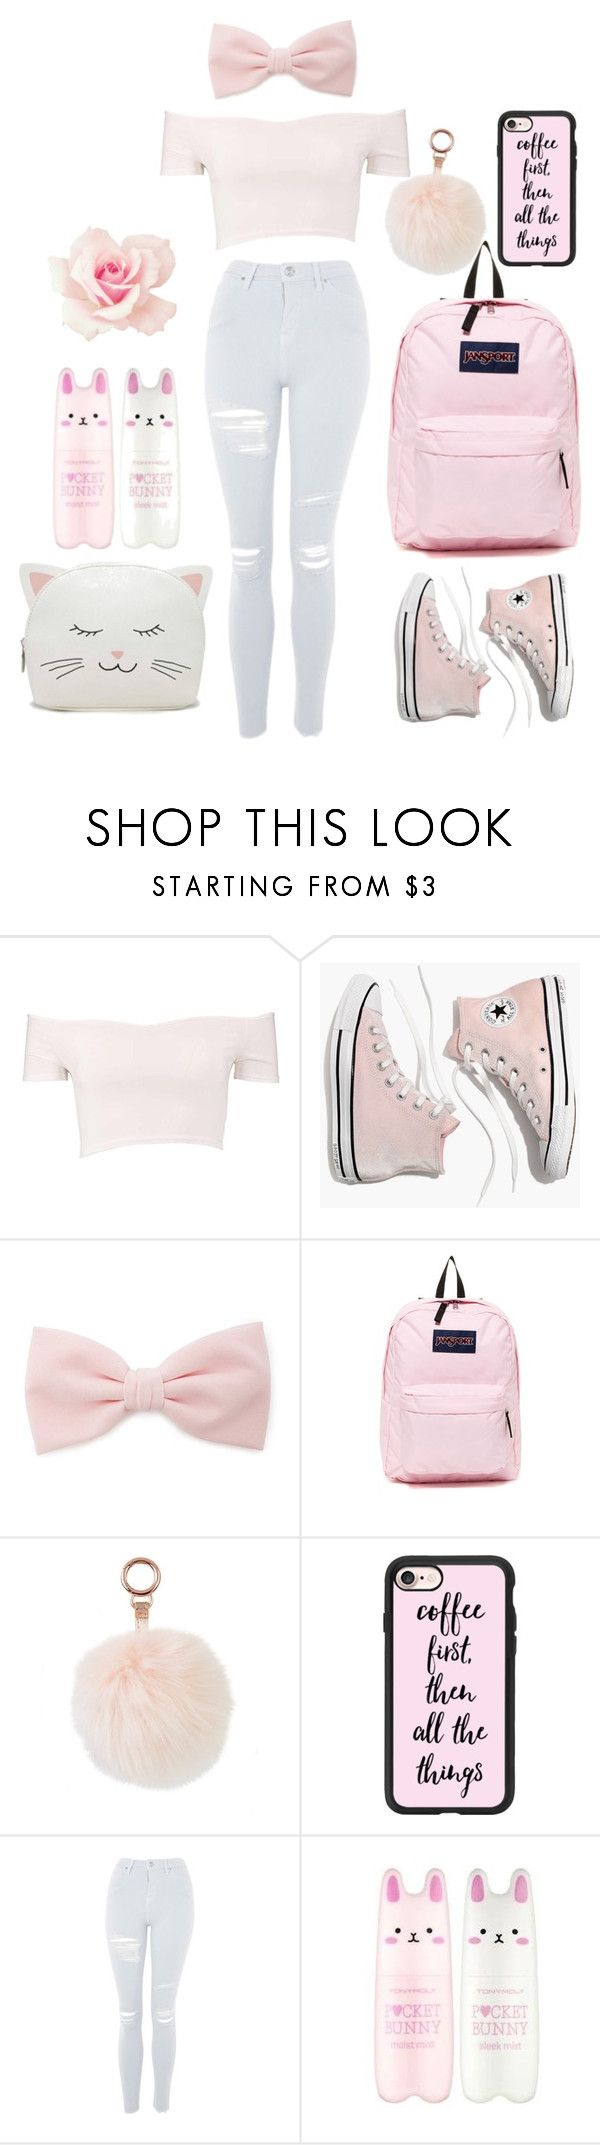 """Girly Back To School♡"" by emsliewall13 on Polyvore featuring Boohoo, Madewell, Forever 21, JanSport, Casetify, Topshop and Tony Moly"